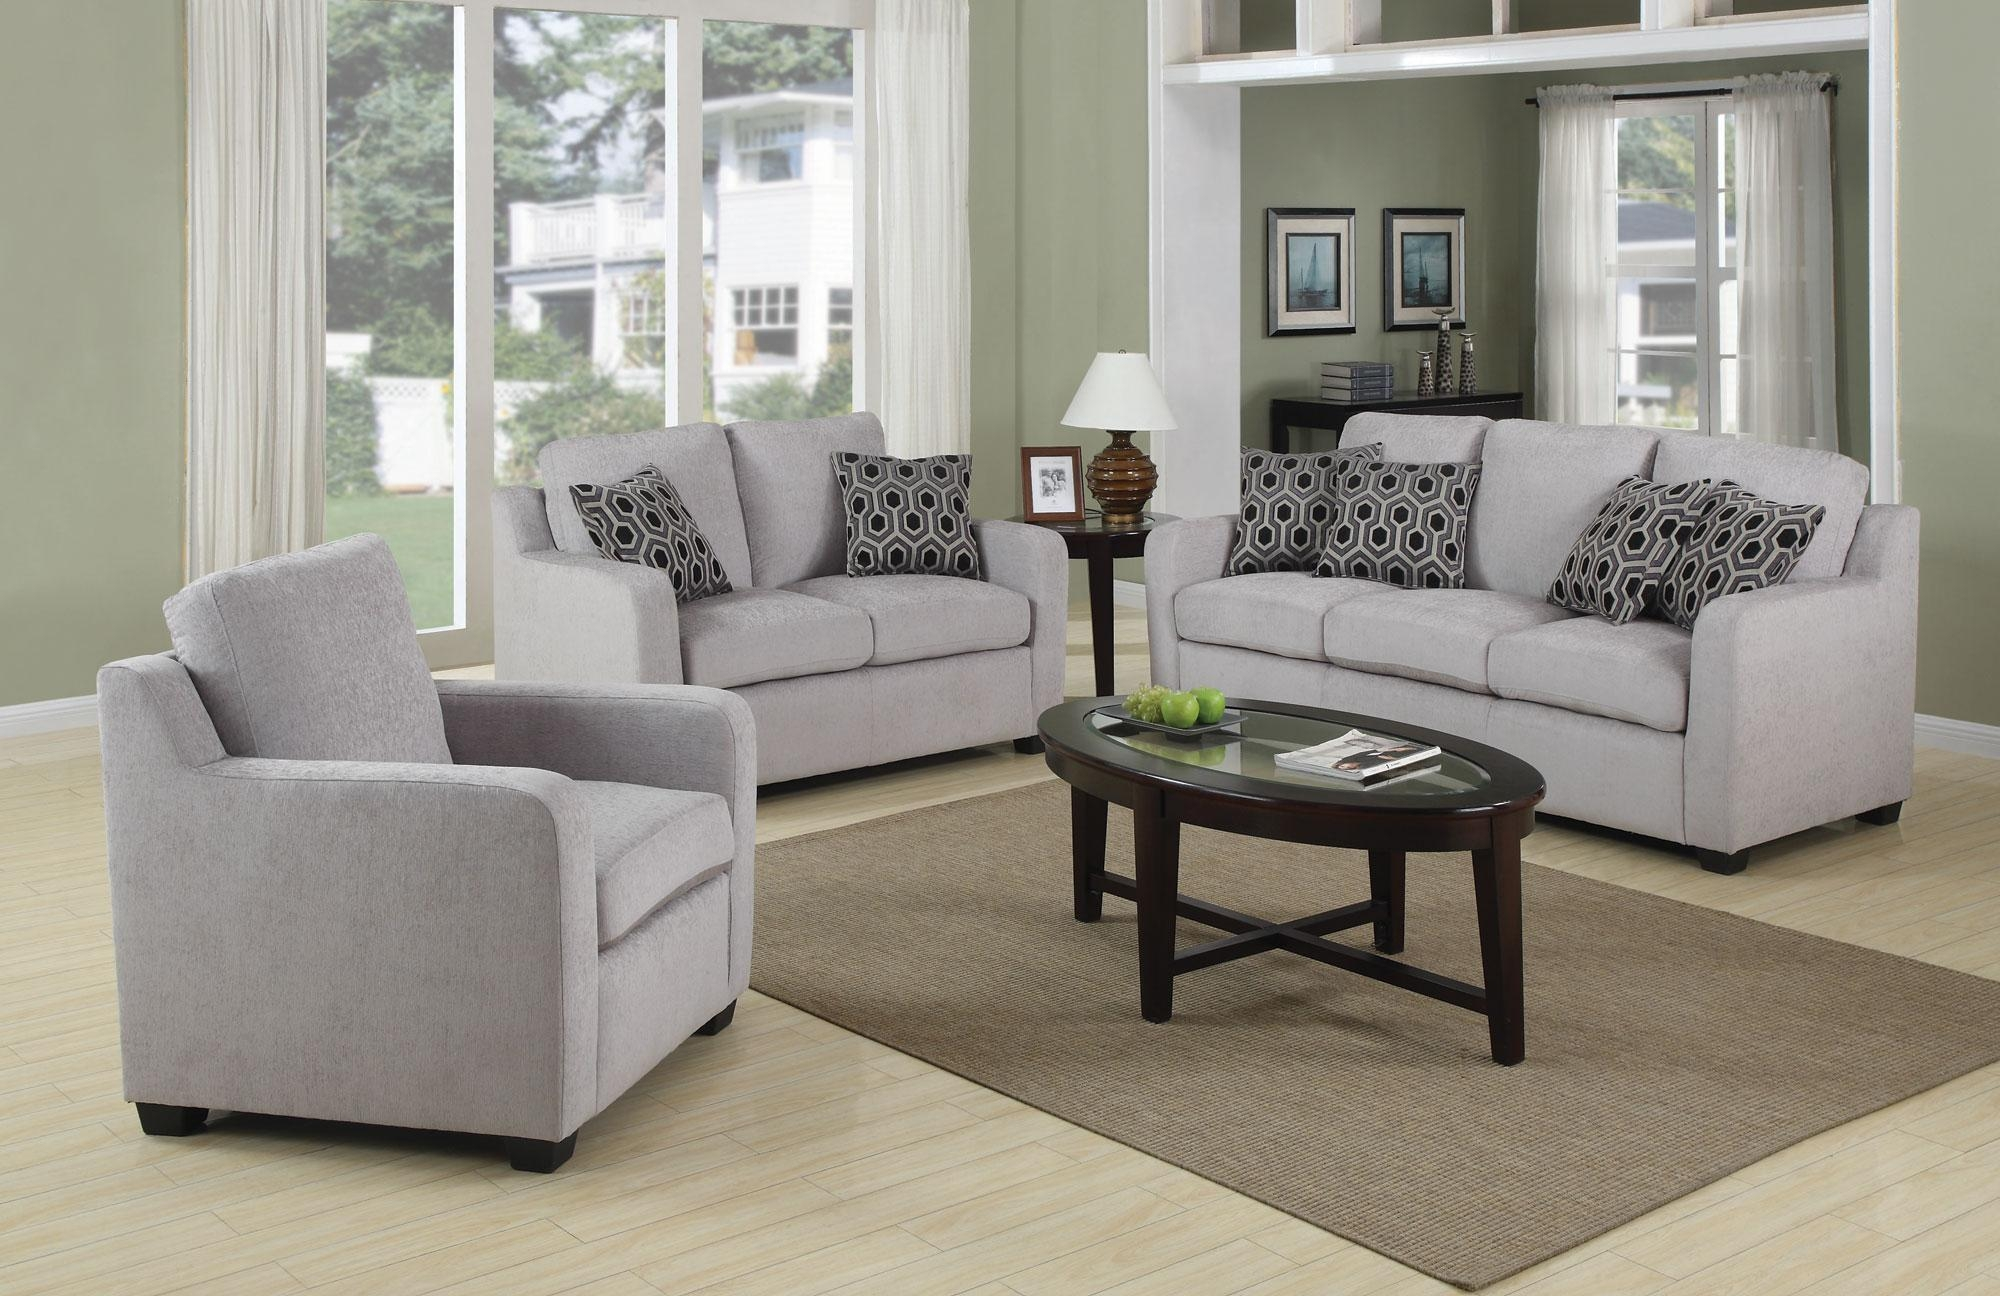 Sofas For A Small Living Room – Destroybmx With Regard To Small Lounge Sofas (Image 18 of 20)